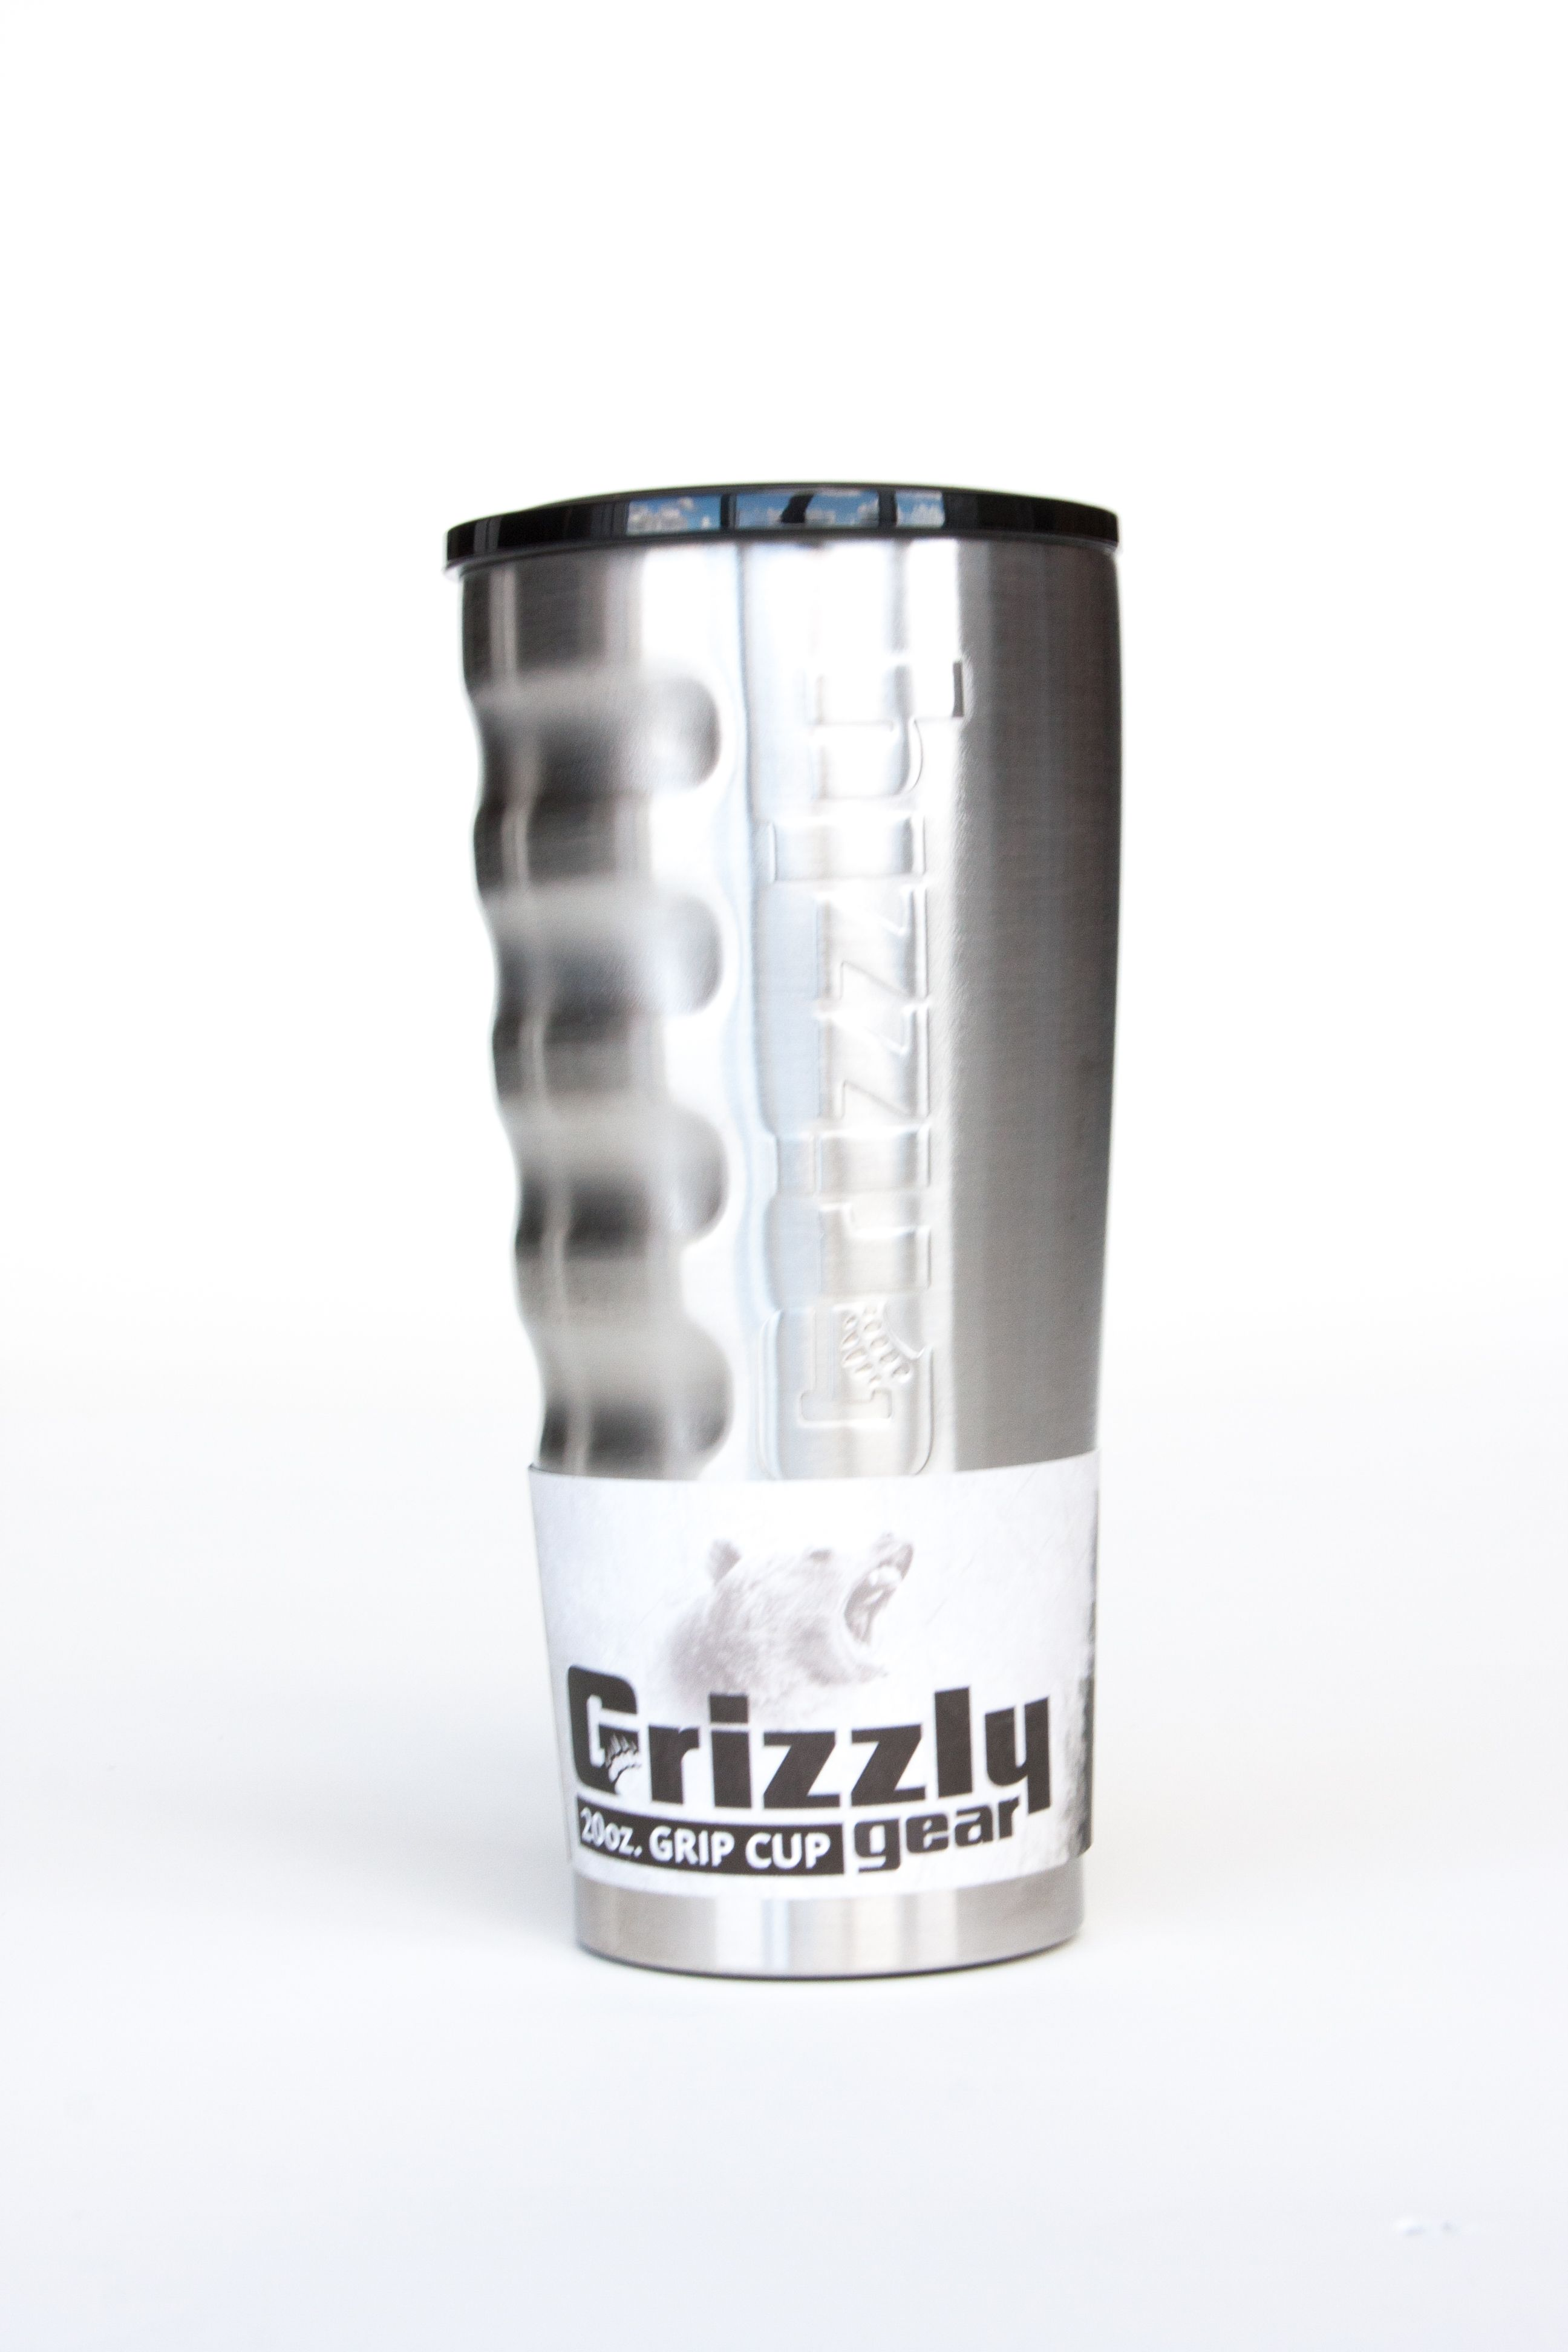 Grizzly 20 Oz. GG Cup – Stainless Steel